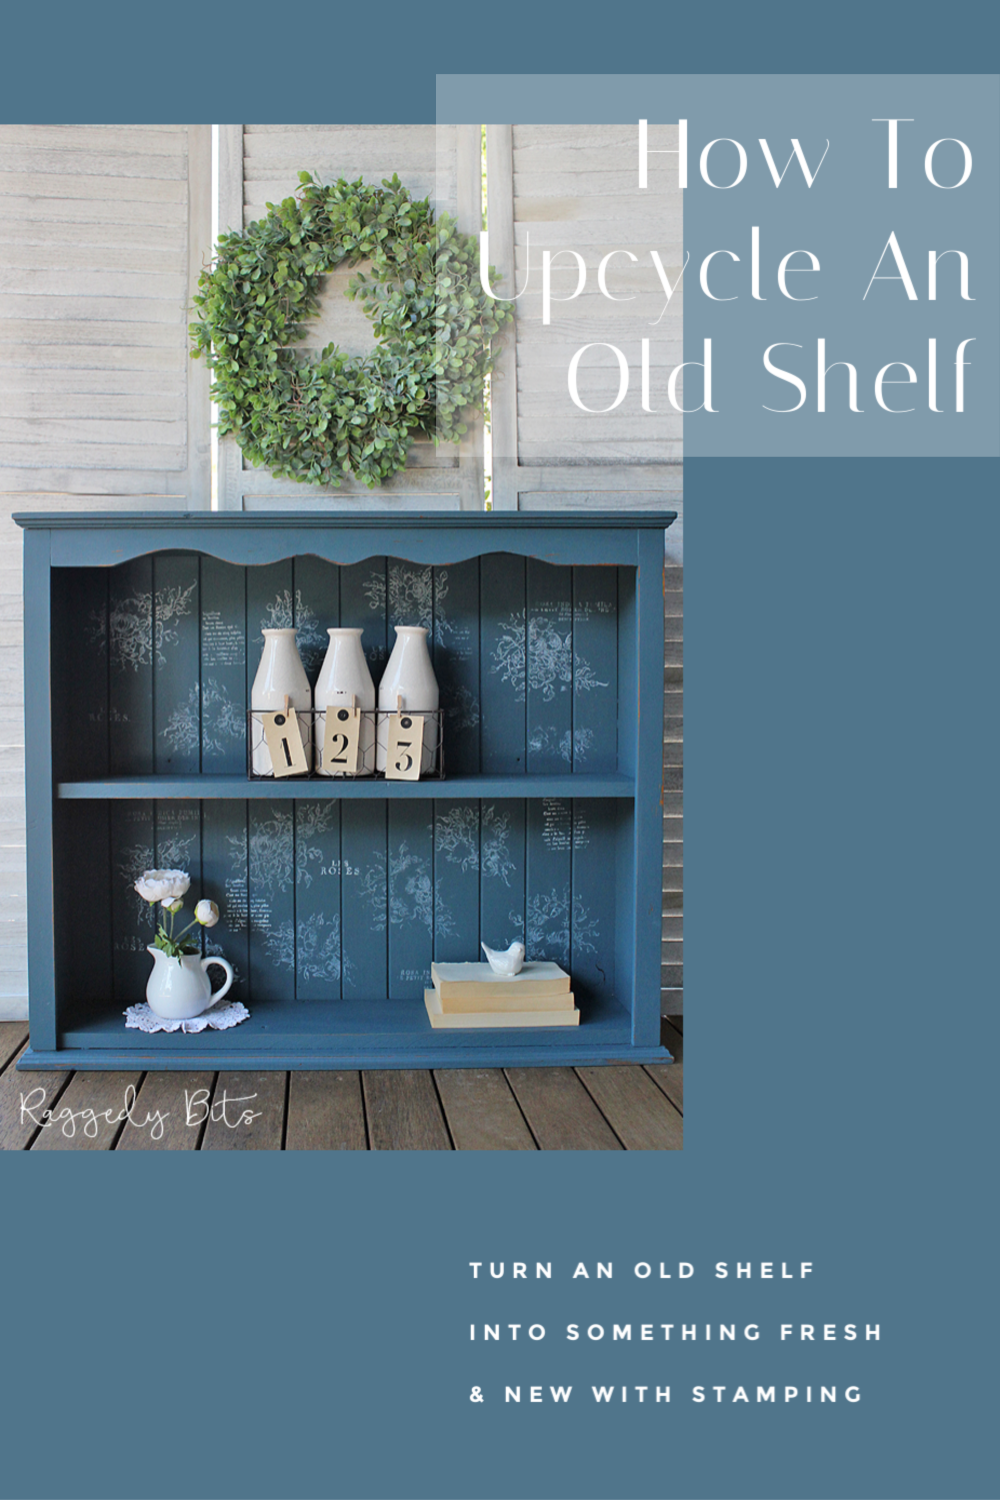 Sharing a fun way to Upcycle an old set of shelves using stamps | How to Upcycle Old Shelves With Stamps | #raggedybits #IODDecorStamps #FusionMineralPaint #Seaside #PaintedFurniture #DIY #upcycle